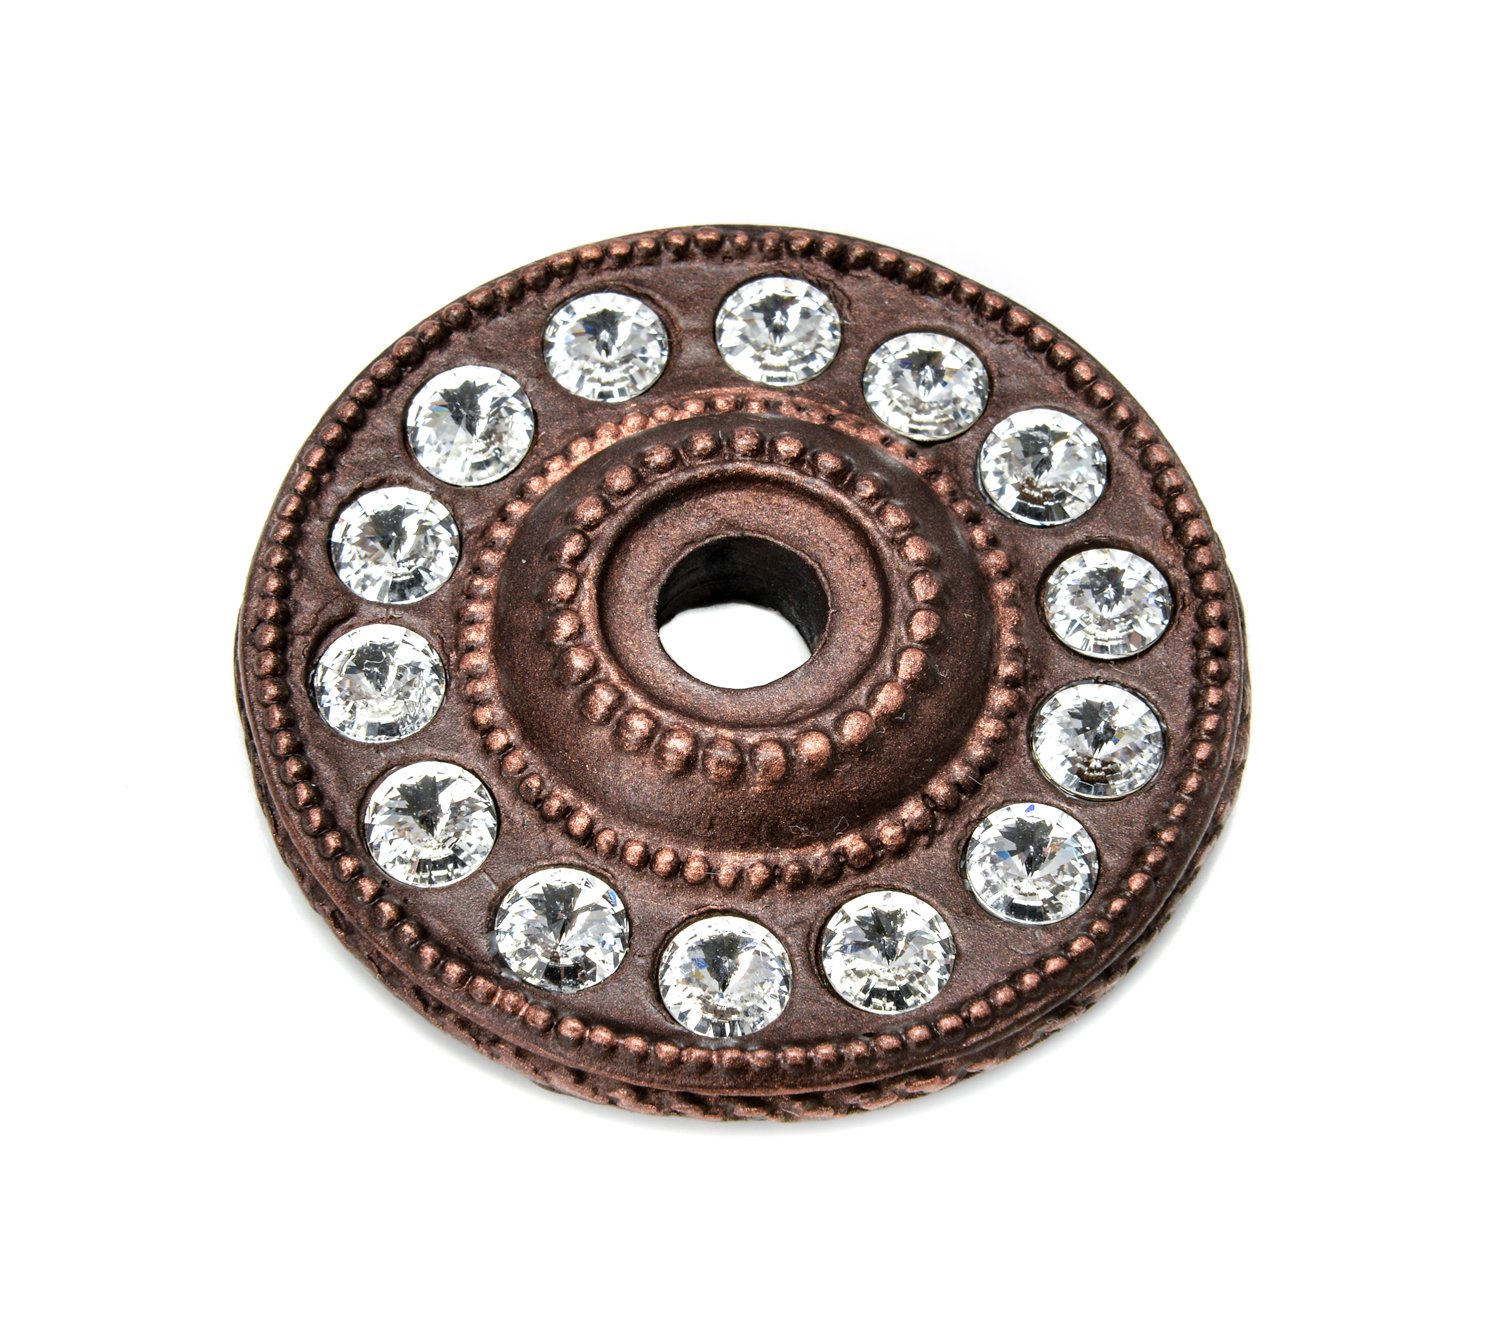 Carpe Diem Hardware Carpe Diem 883-22C Cache' Large round escutcheon with swarovski elements Oil Rubbed Bronze Oil Rubbed Bronze